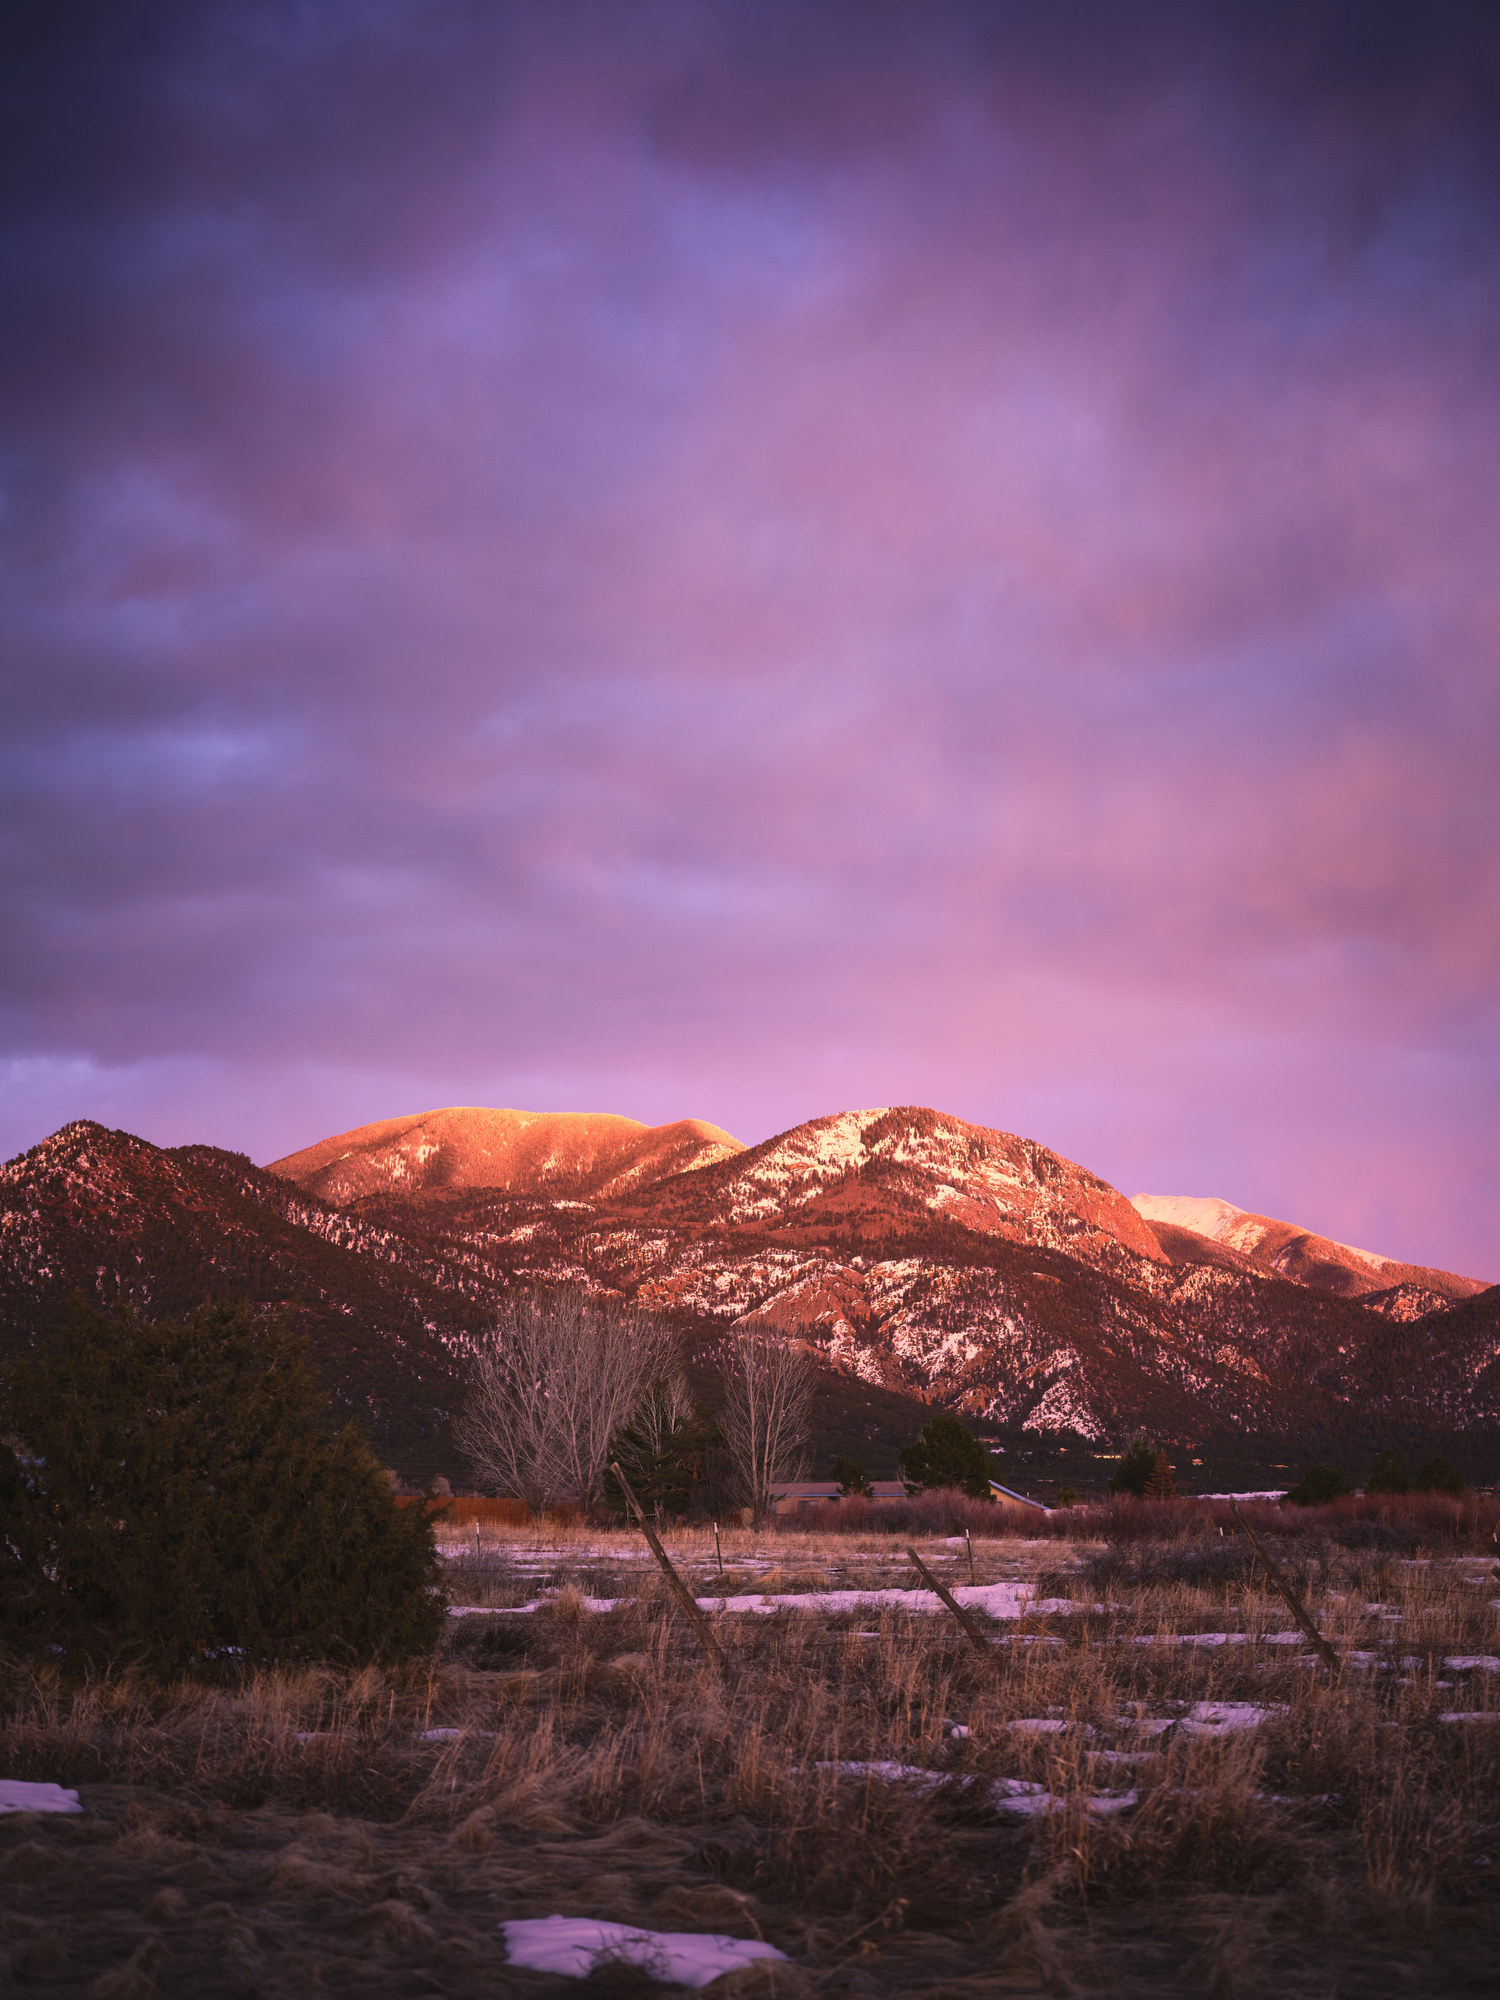 A pink sunset in Taos, New Mexico.